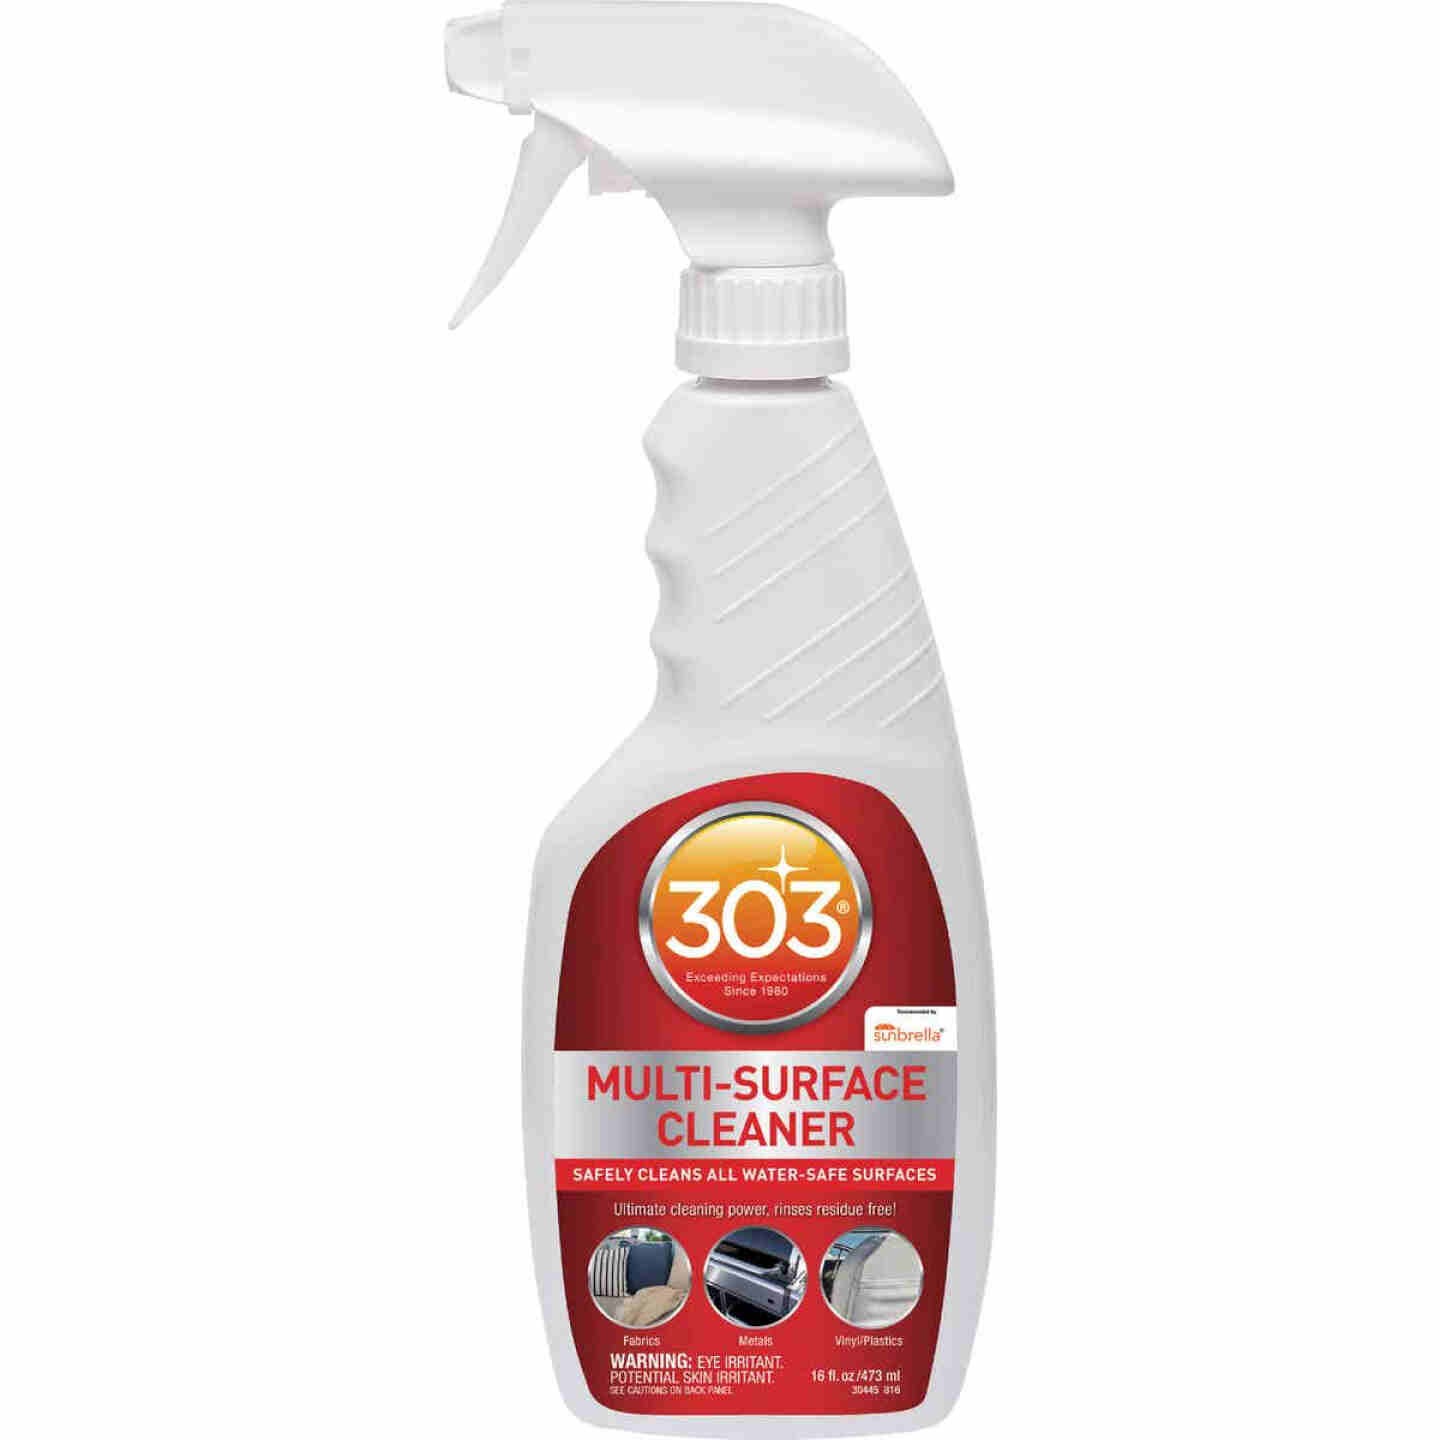 303 Products 16 Oz. Trigger Spray Multi-Surface Outdoor Furniture Cleaner Image 1